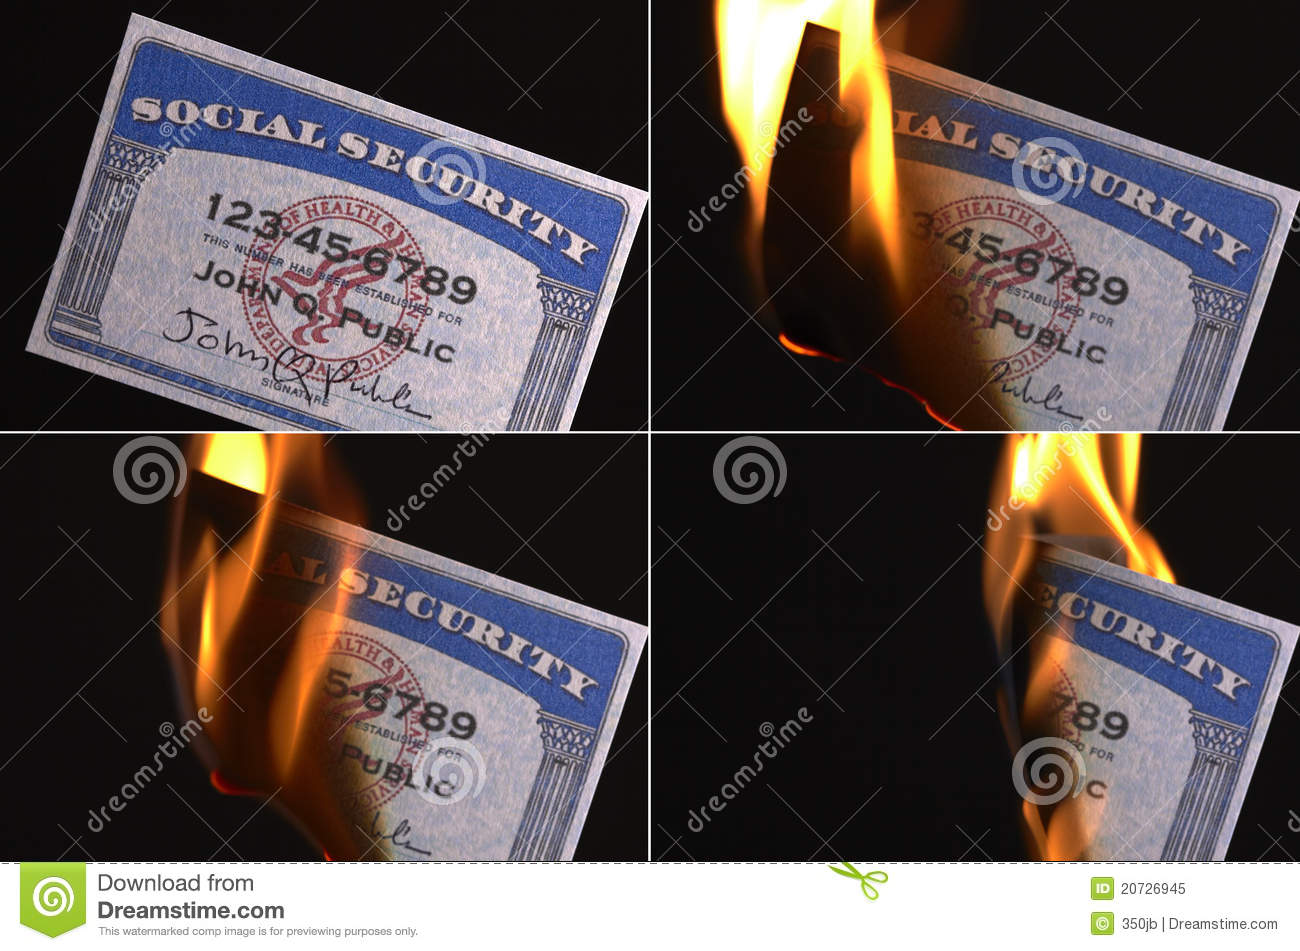 Social Security Card Stock Image Image Of Card Number 20726945